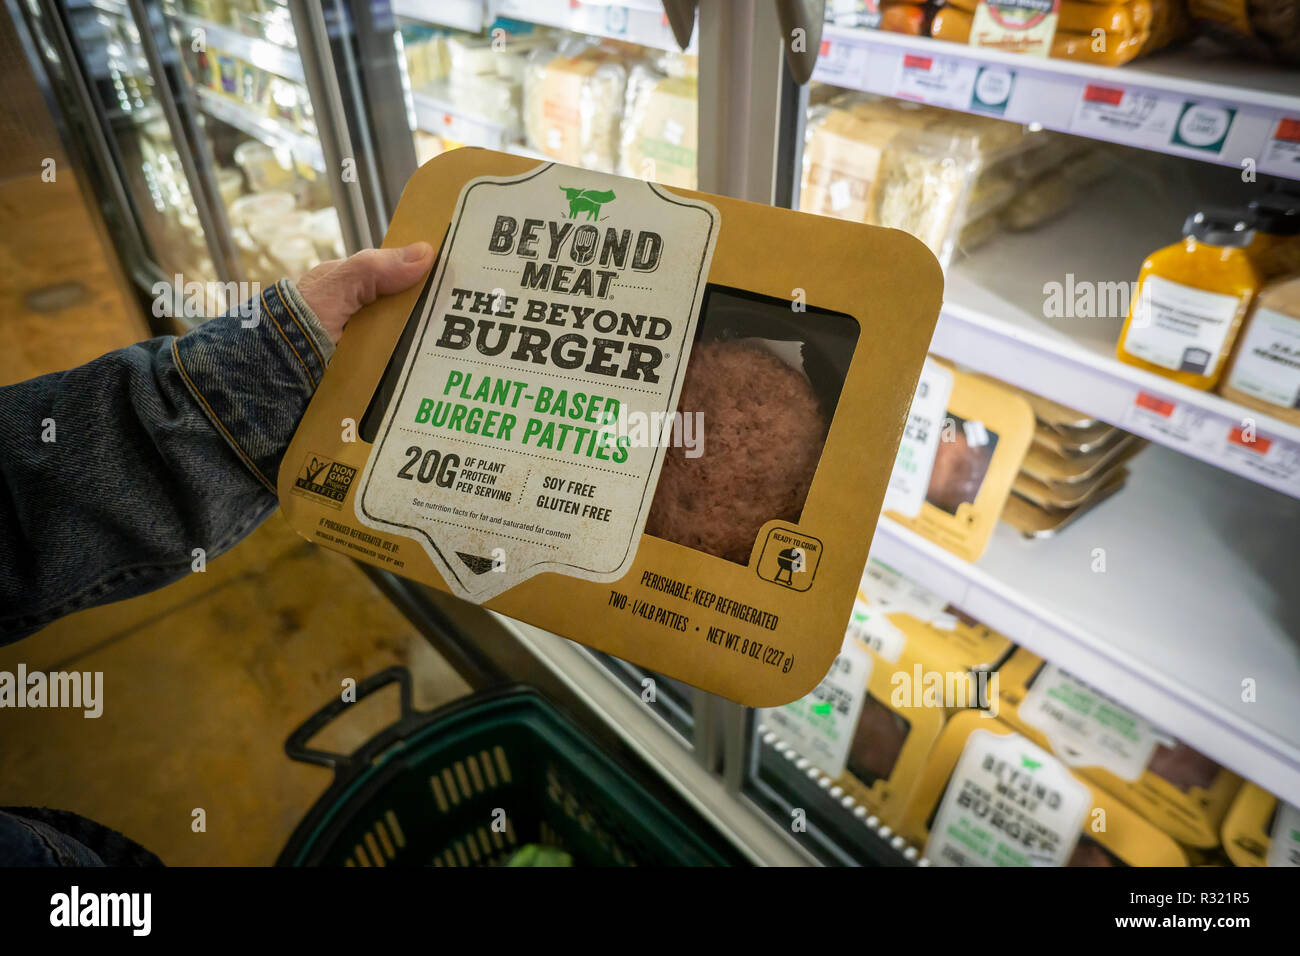 A shopper chooses a package of Beyond Meat from a freezer in a supermarket in New York on Monday, November 19, 2018. The plant-based protein start-up Beyond Meat has filed for an initial public offering for $100 million. The global market for meat substitutes is expected to grow to $6.4 billion by the year 2023, currently it is estimated at $4.6 billion. (© Richard B. Levine) - Stock Image